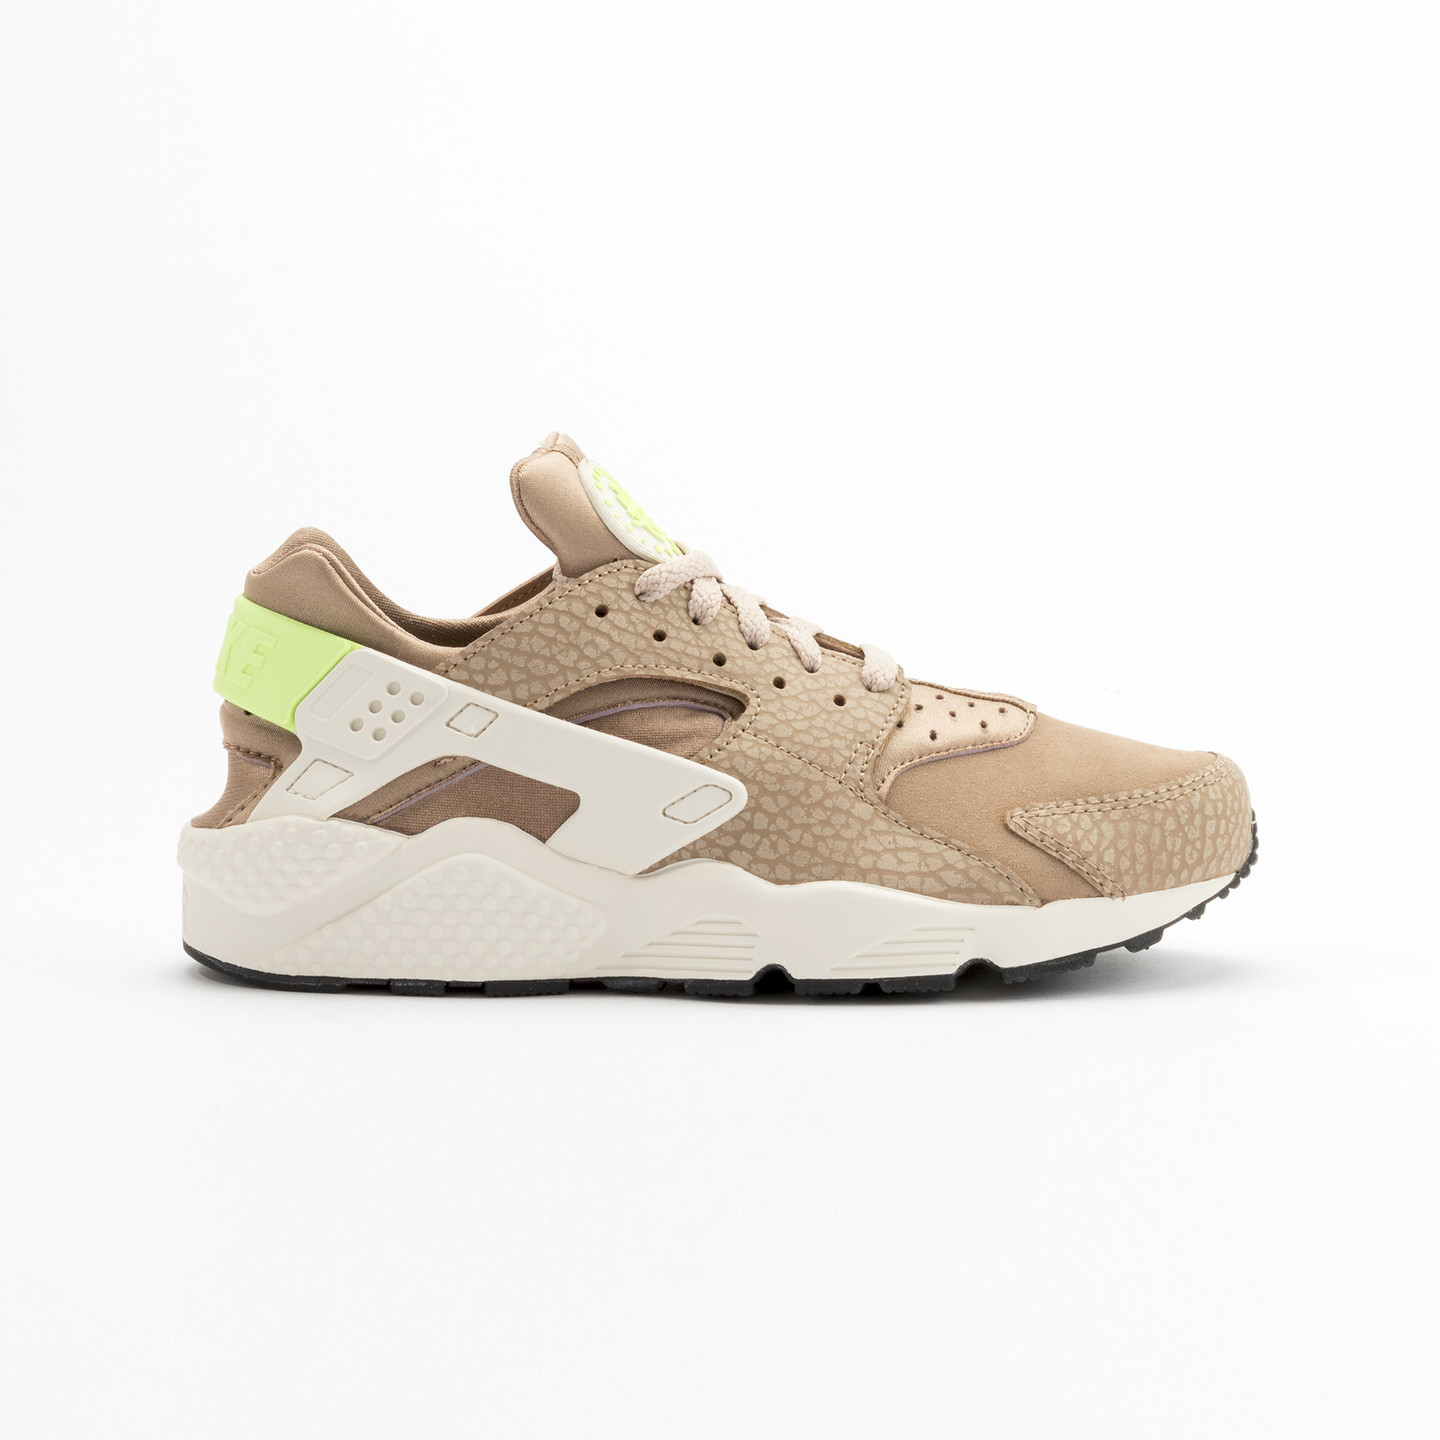 Nike Air Huarache Run Premium Desert Camo / Sea Glass / Ghost Green 704830-203-45.5